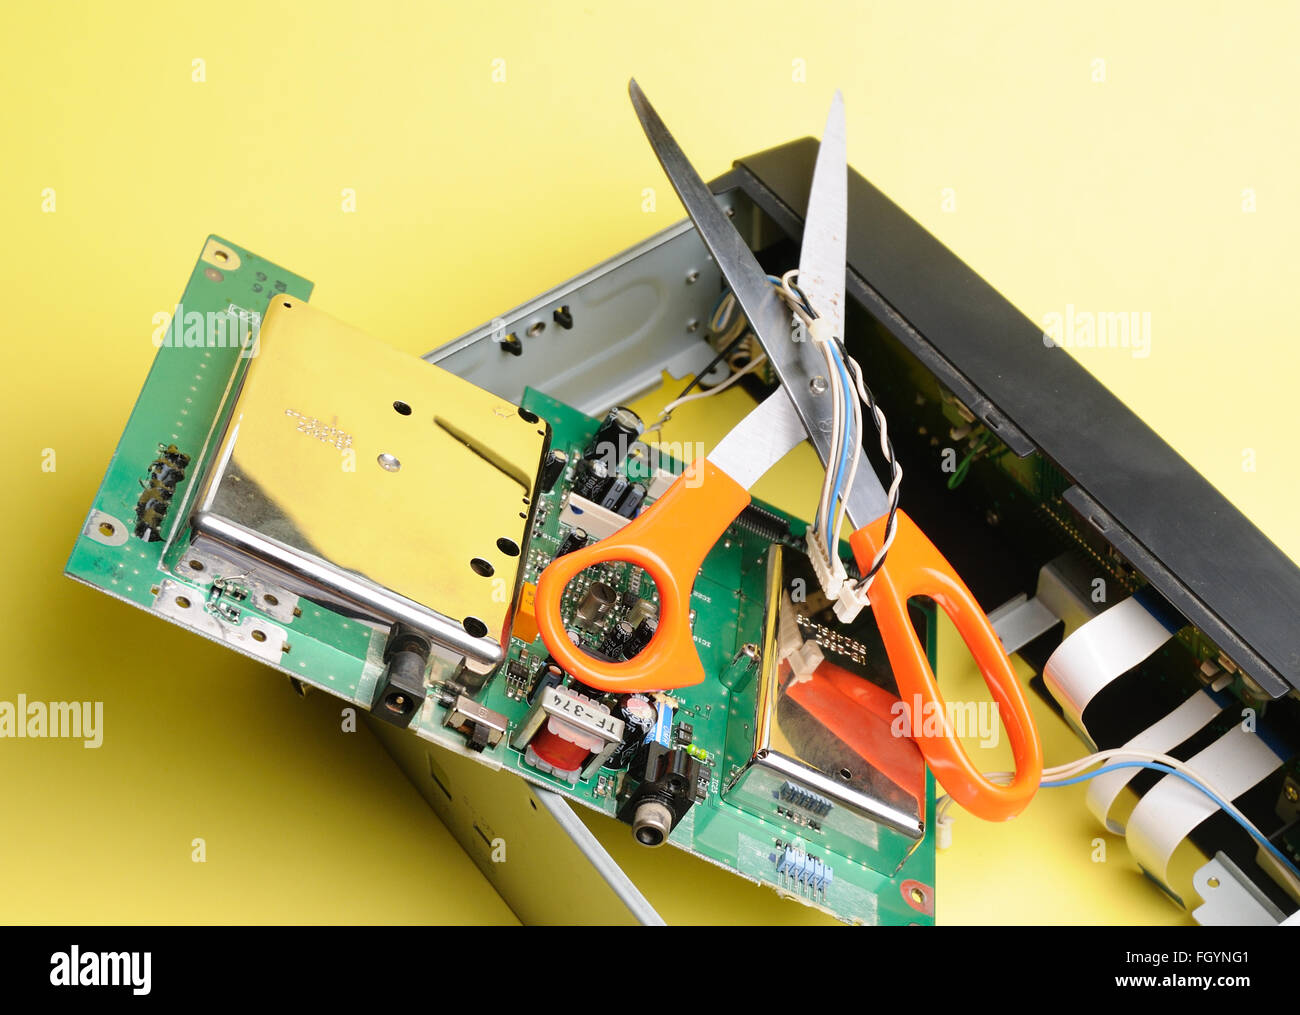 Printed Circuit Board - Stock Image